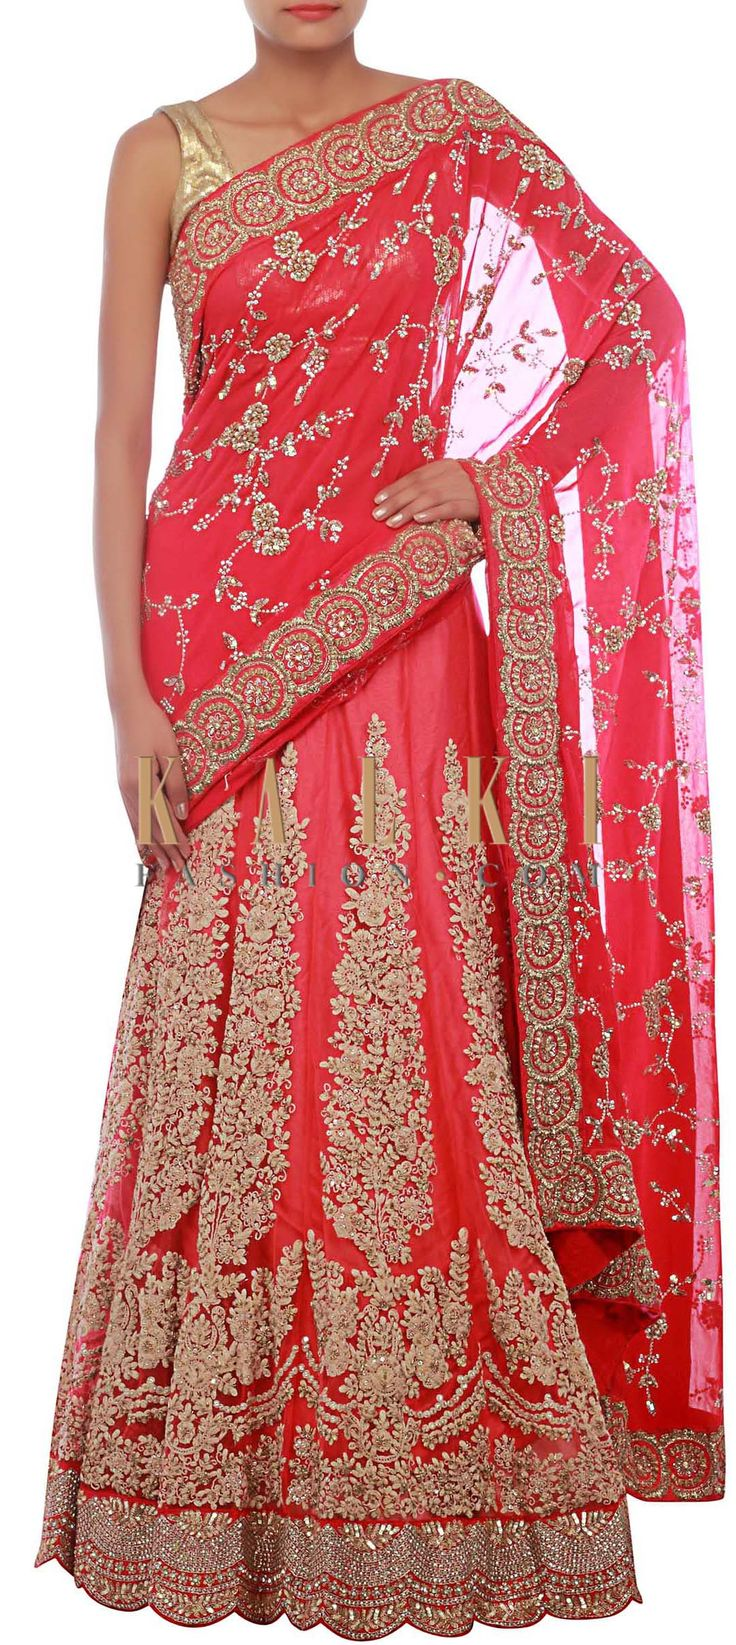 Buy Online from the link below. We ship worldwide (Free Shipping over US$100) http://www.kalkifashion.com/pink-lehenga-saree-embellished-in-zardosi-and-thread-embroidery-only-on-kalki.html